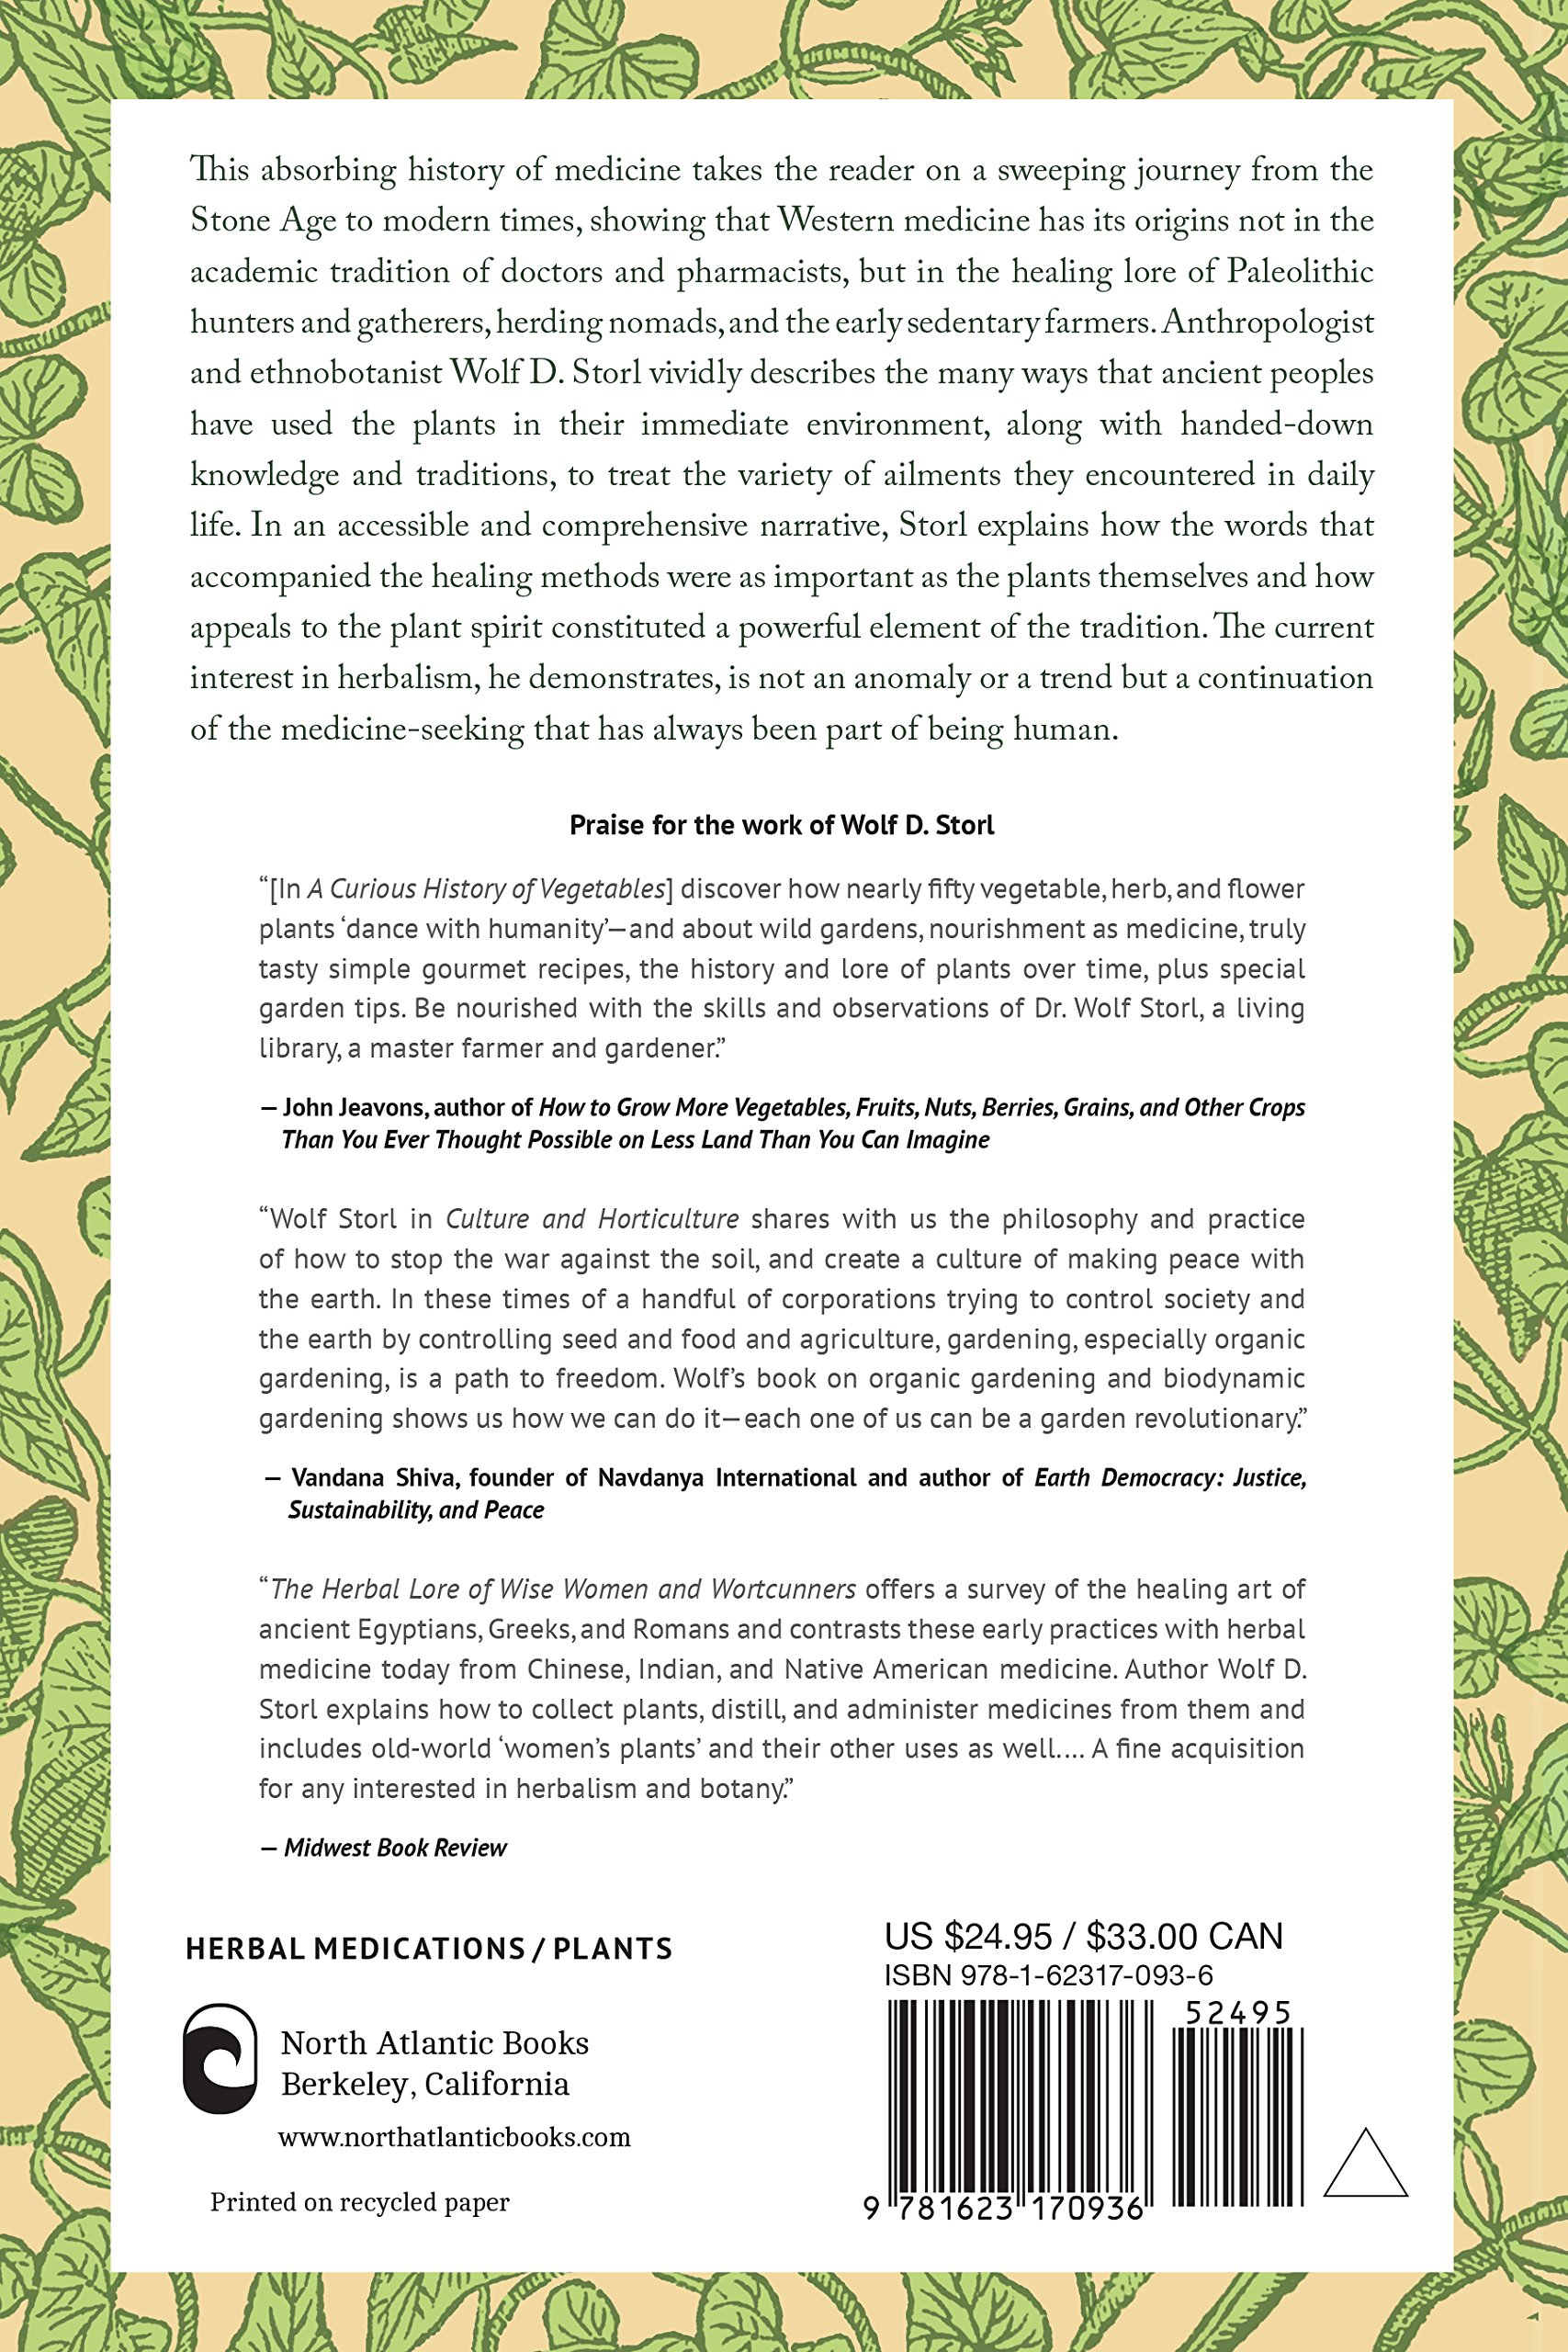 The Untold History of Healing: Plant Lore and Medicinal Magic from the  Stone Age to Present: Wolf D. Storl: 9781623170936: Amazon.com: Books